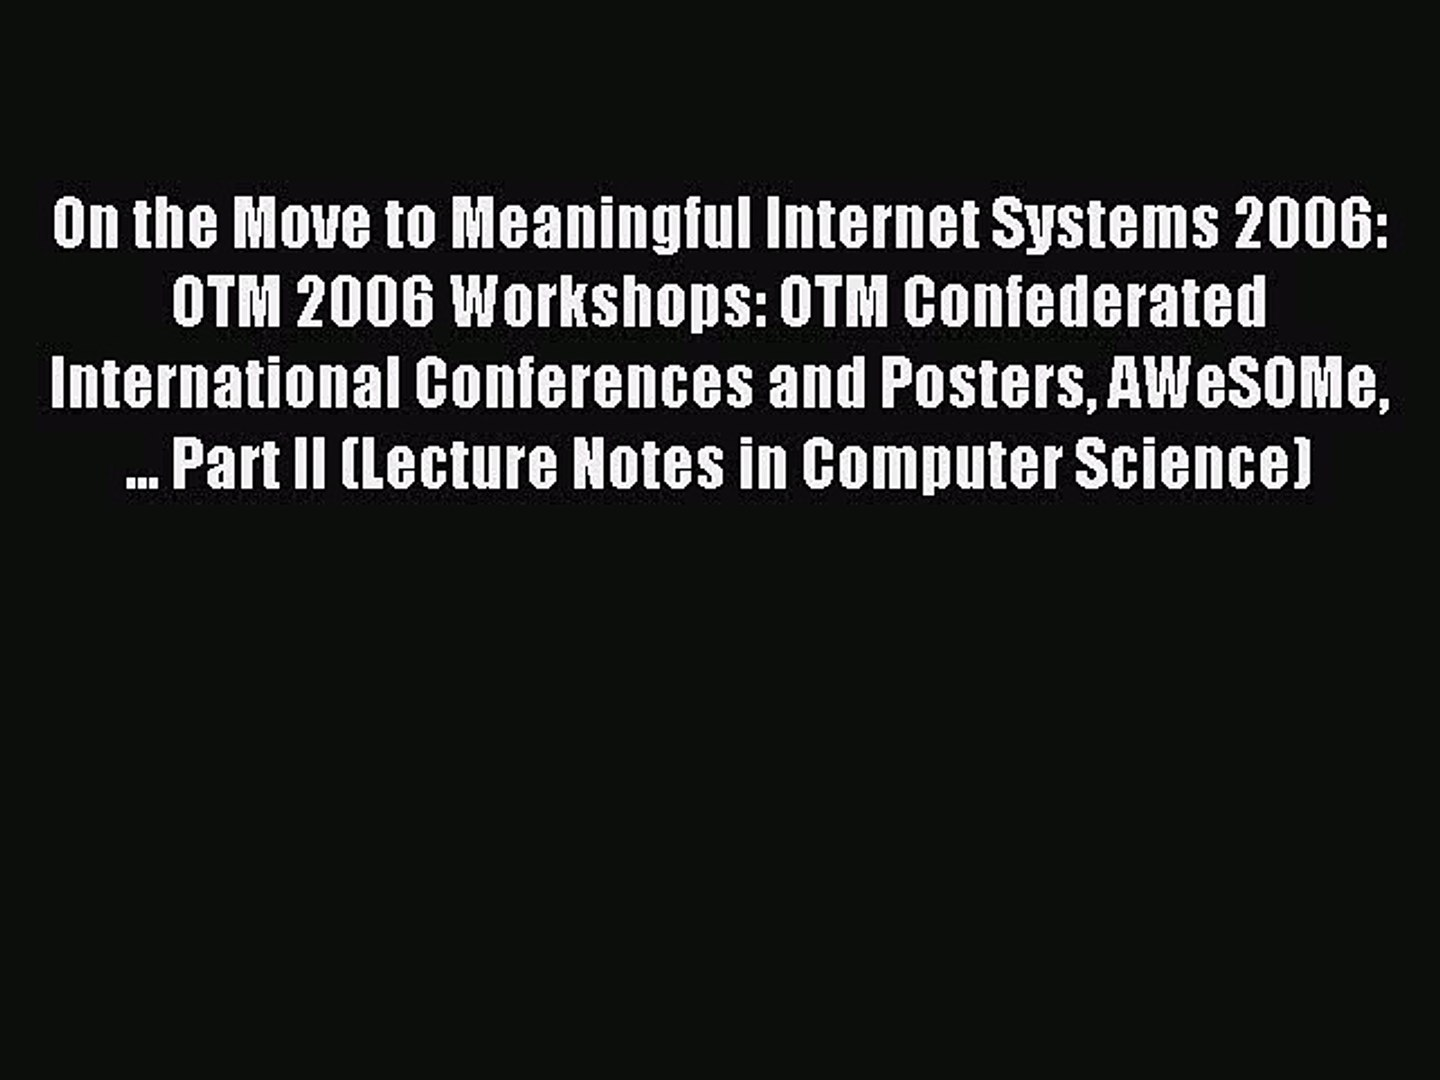 Read On the Move to Meaningful Internet Systems 2006: OTM 2006 Workshops: OTM Confederated